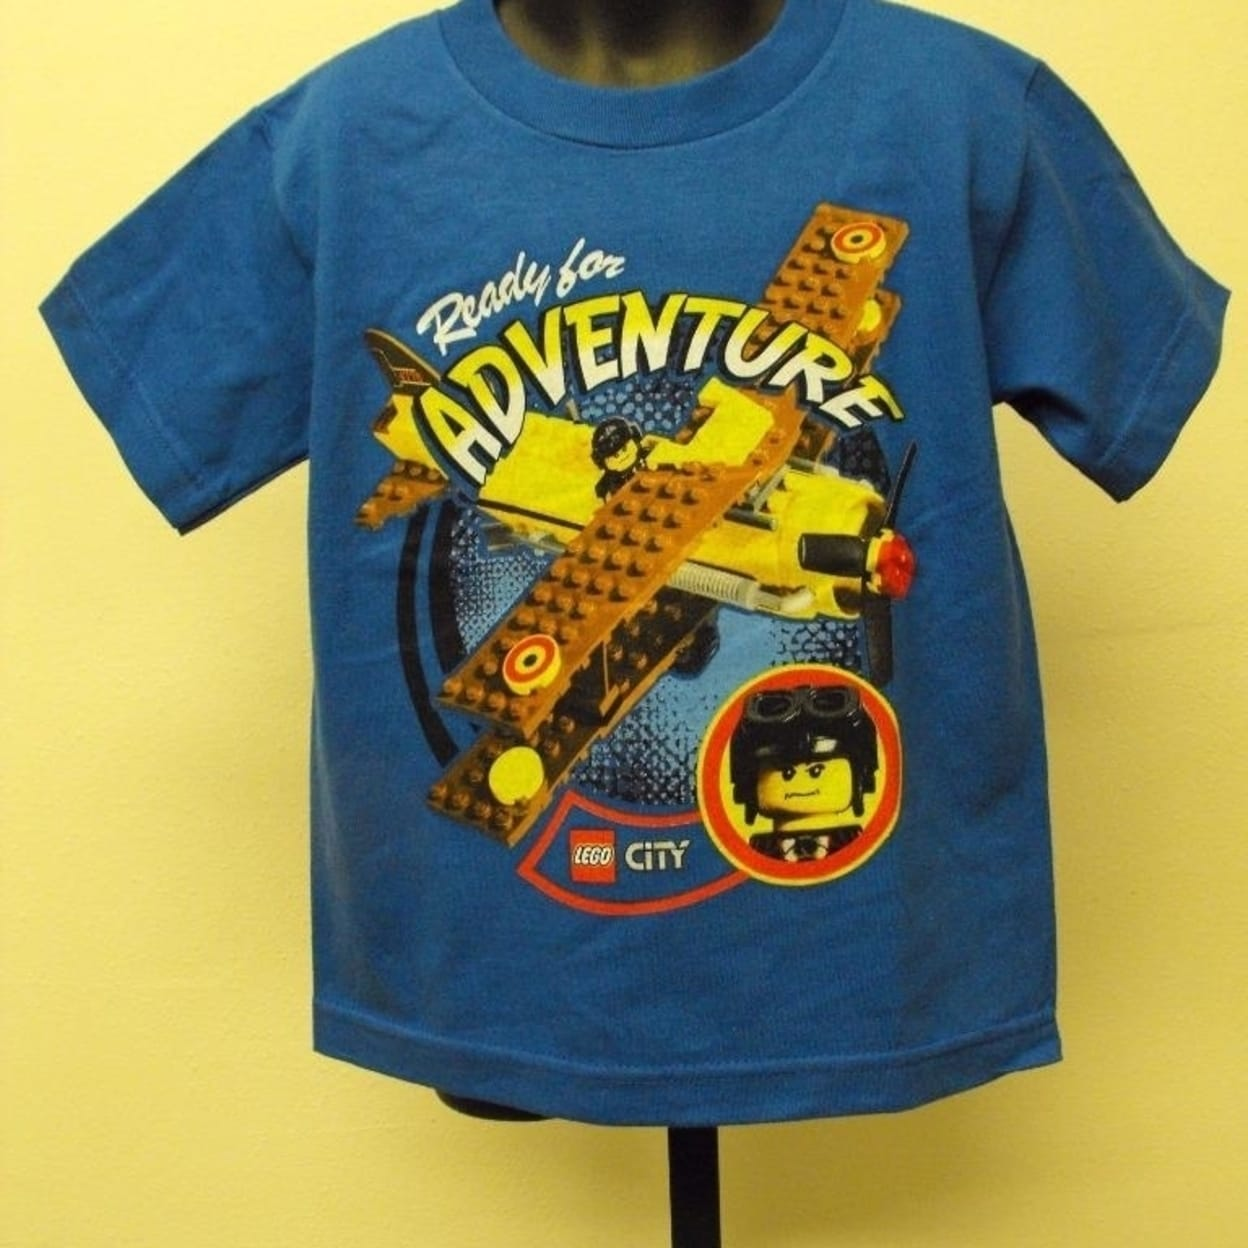 5b1d7c3e9 Shop Lego City Kid Kids Size 4 Graphic T-Shirt - Free Shipping On Orders  Over $45 - Overstock - 23030317